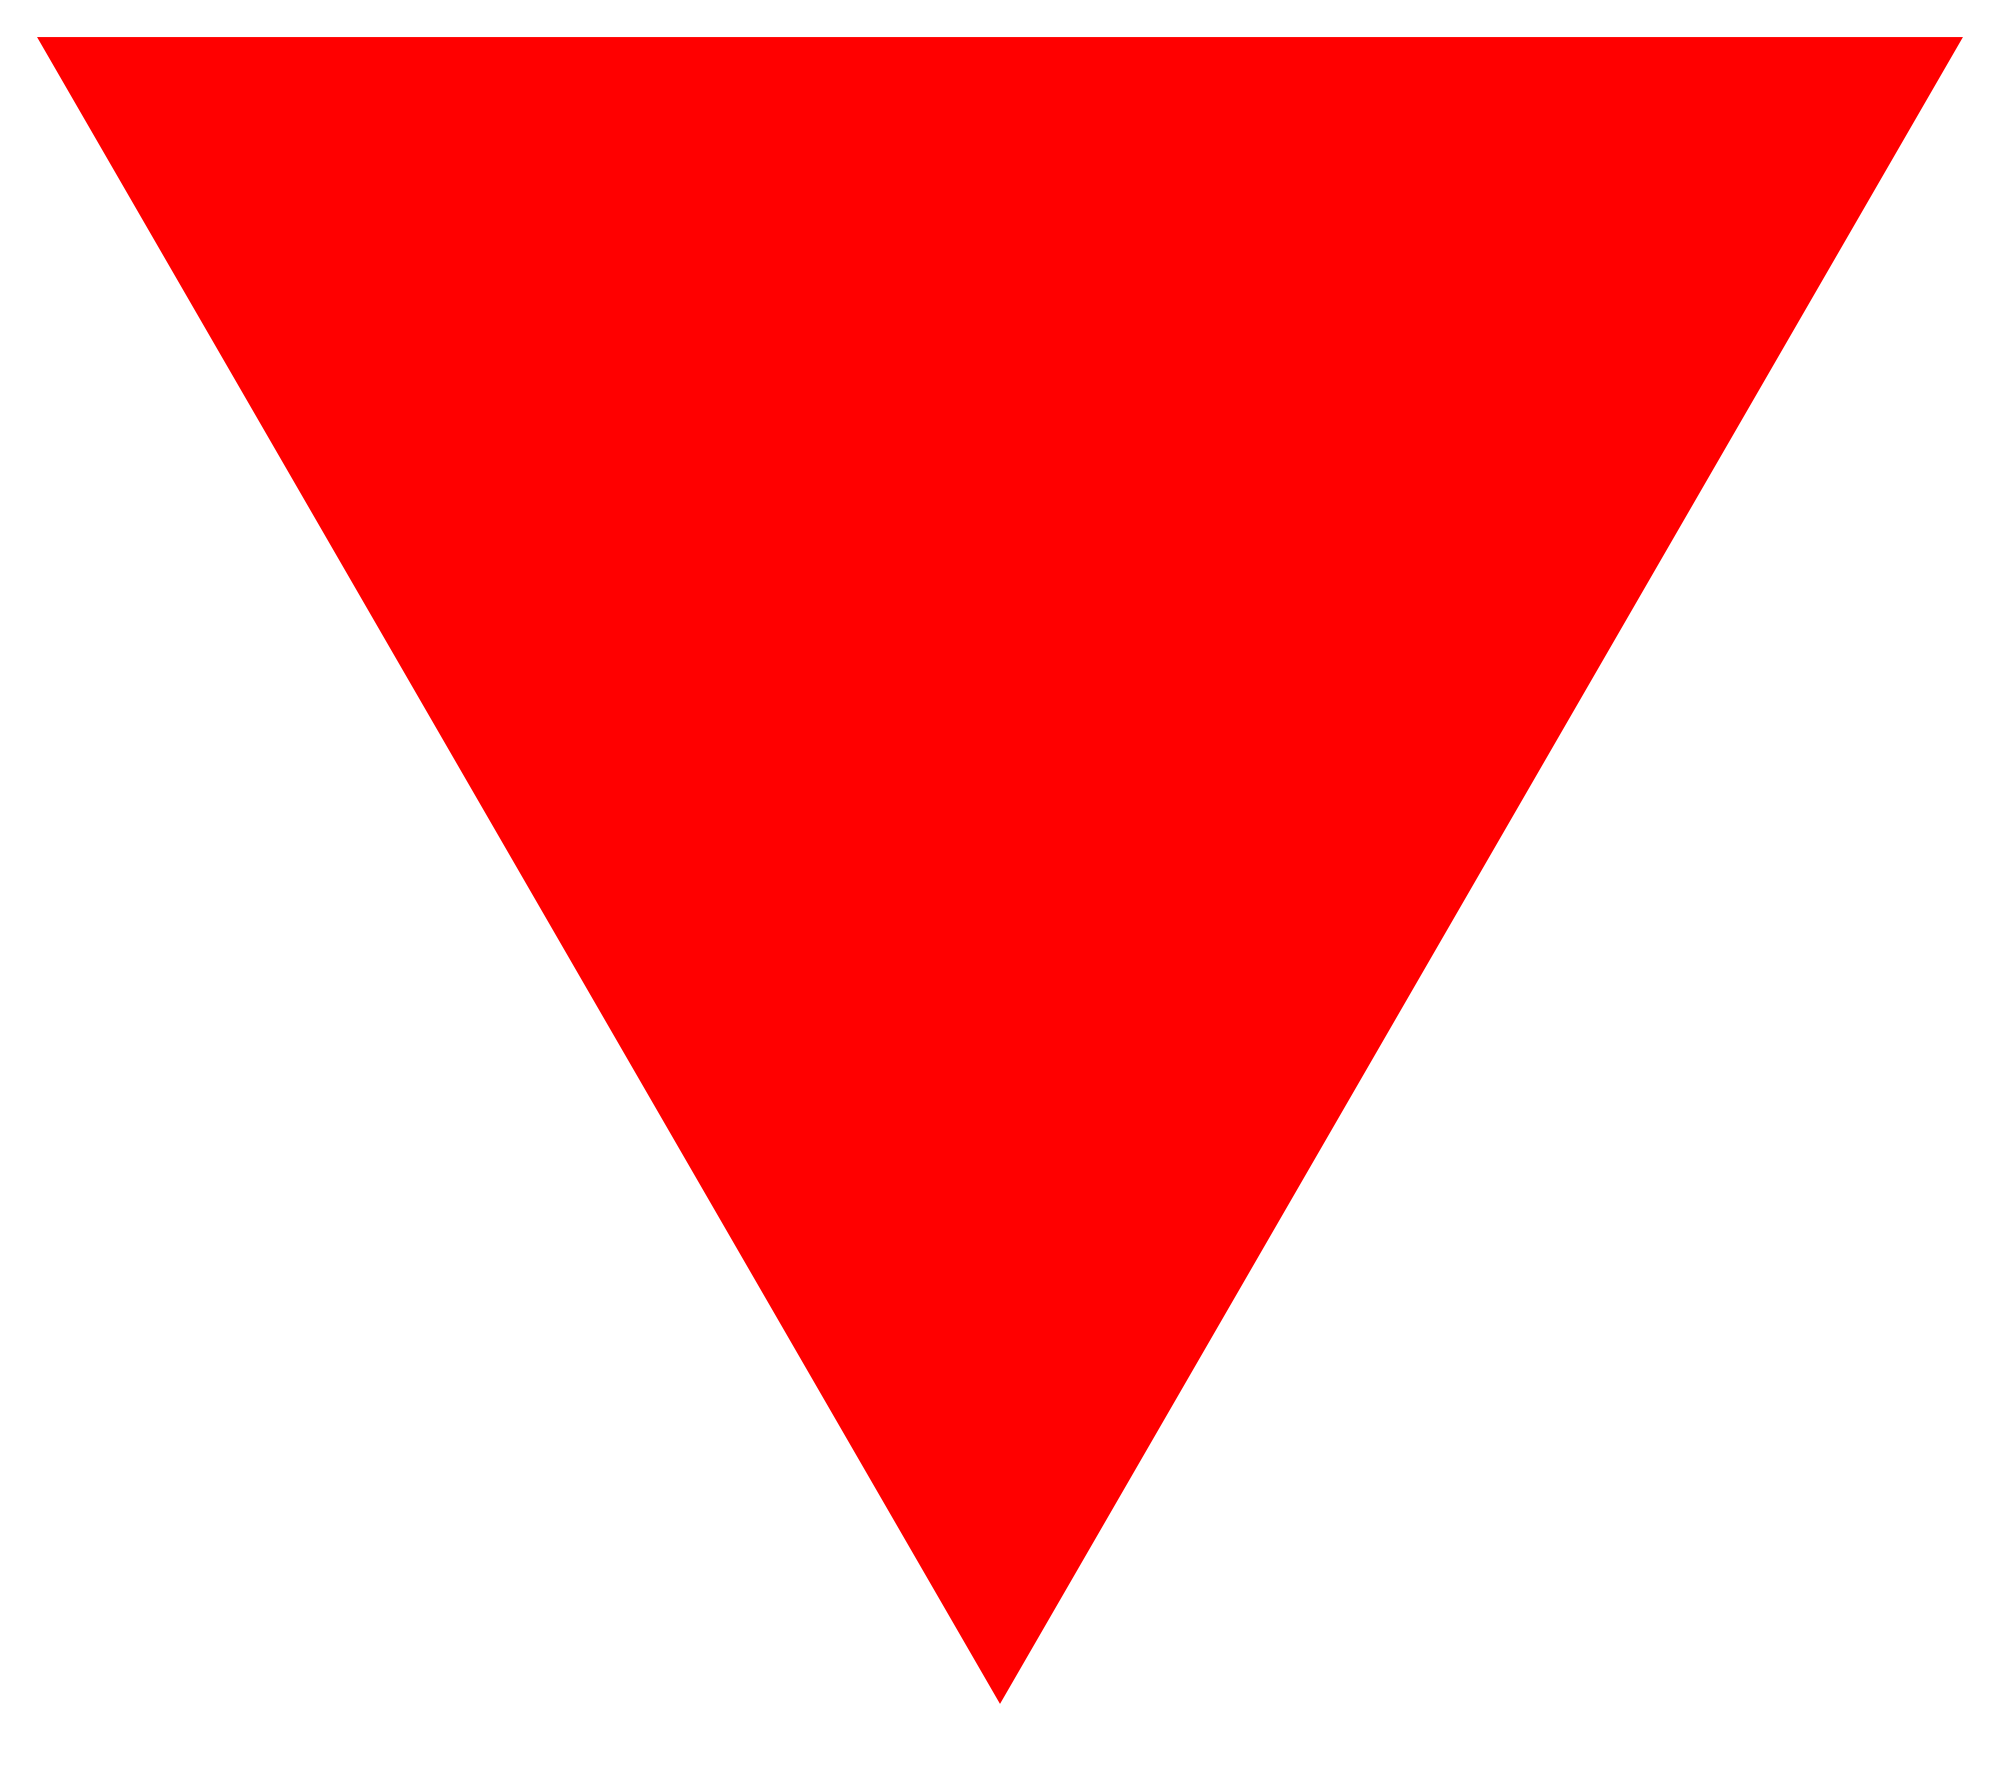 Red triangle png. File svg wikimedia commons